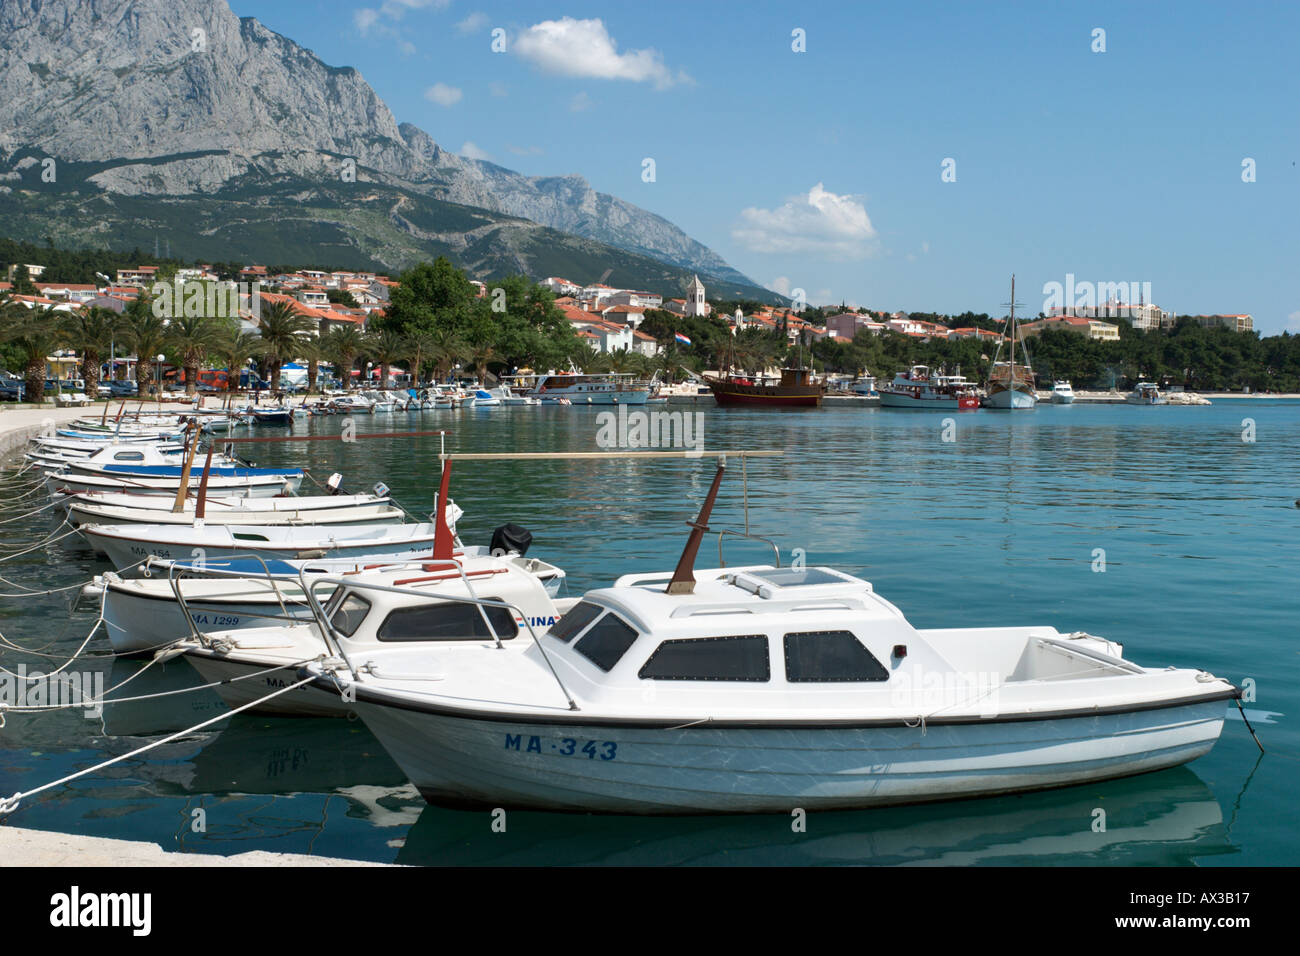 Harbour in Baska Voda, Makarska Riviera, Dalmatian Coast, Croatia - Stock Image